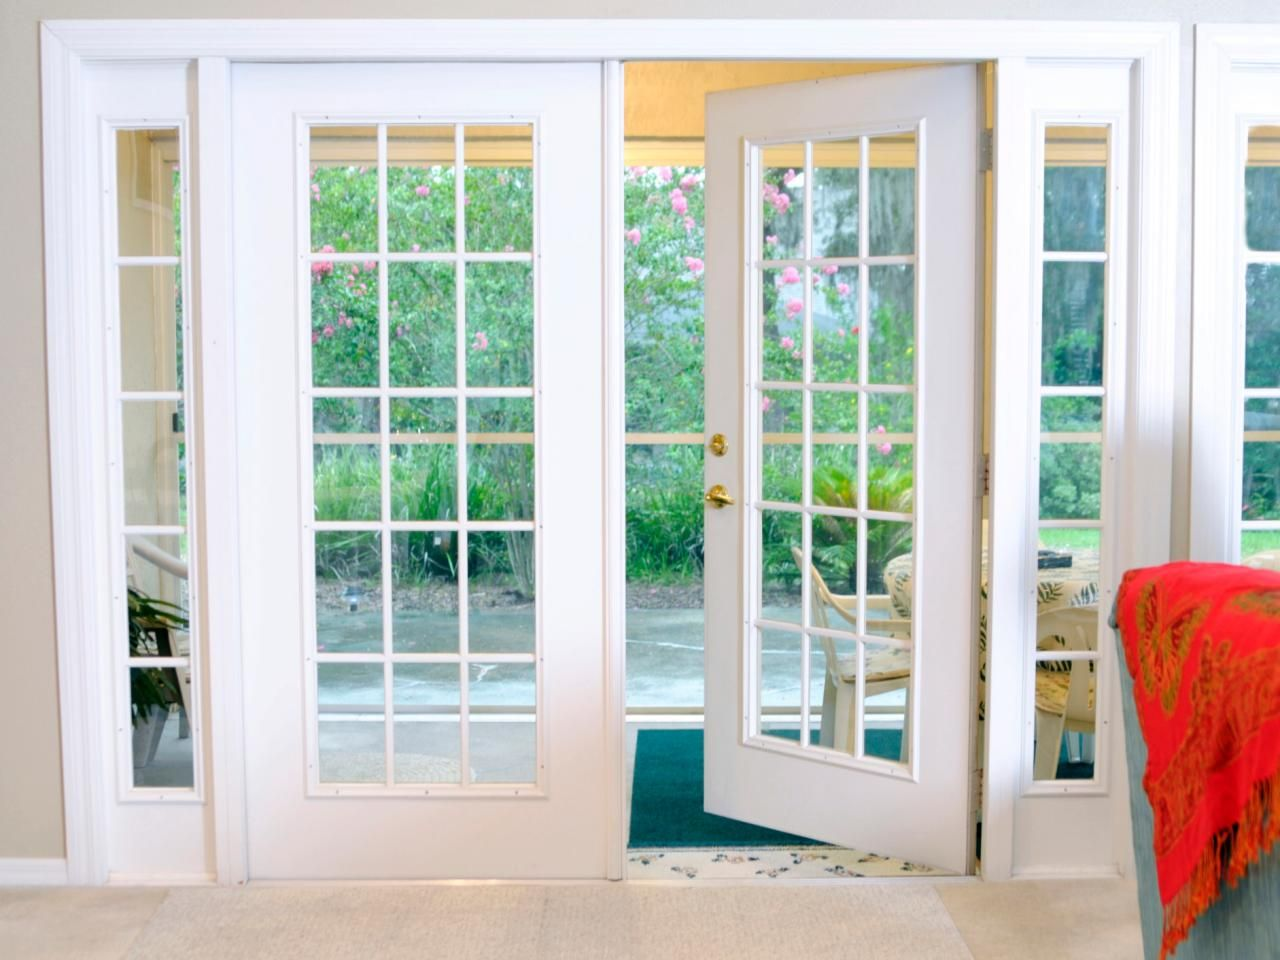 Charming Replace Your Patio Door With One From Dayside! Call Fairview Renovations  Now: (905) 681 9000. When You Purchase From Us, Your Guests Will Be Asking  Where ...